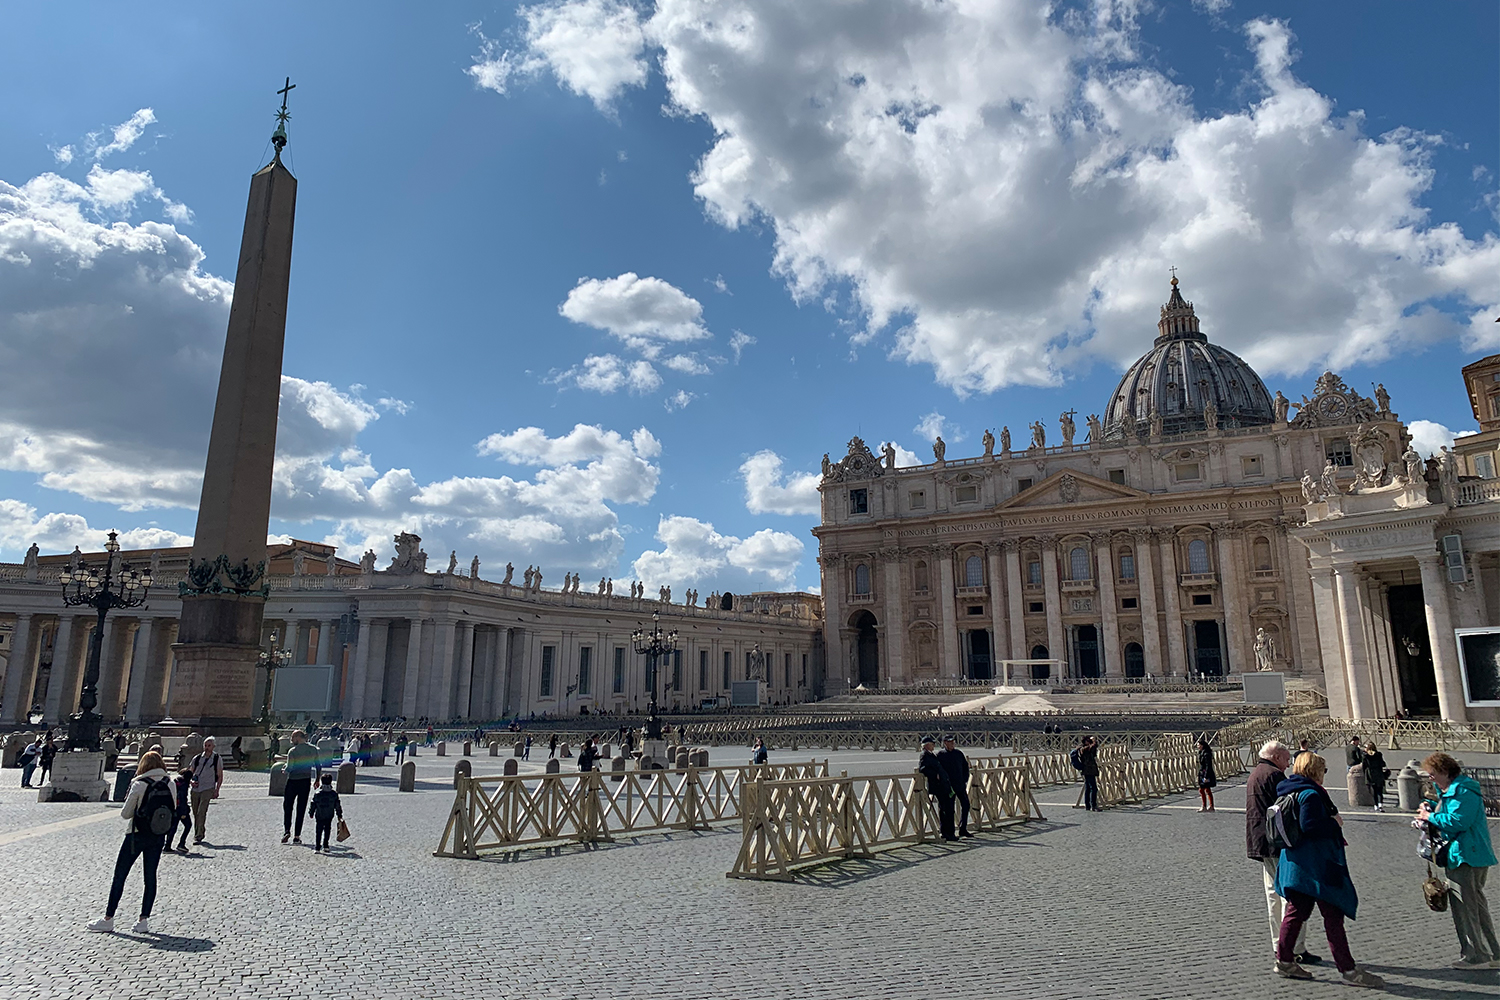 Empty courtyard at the Vatican